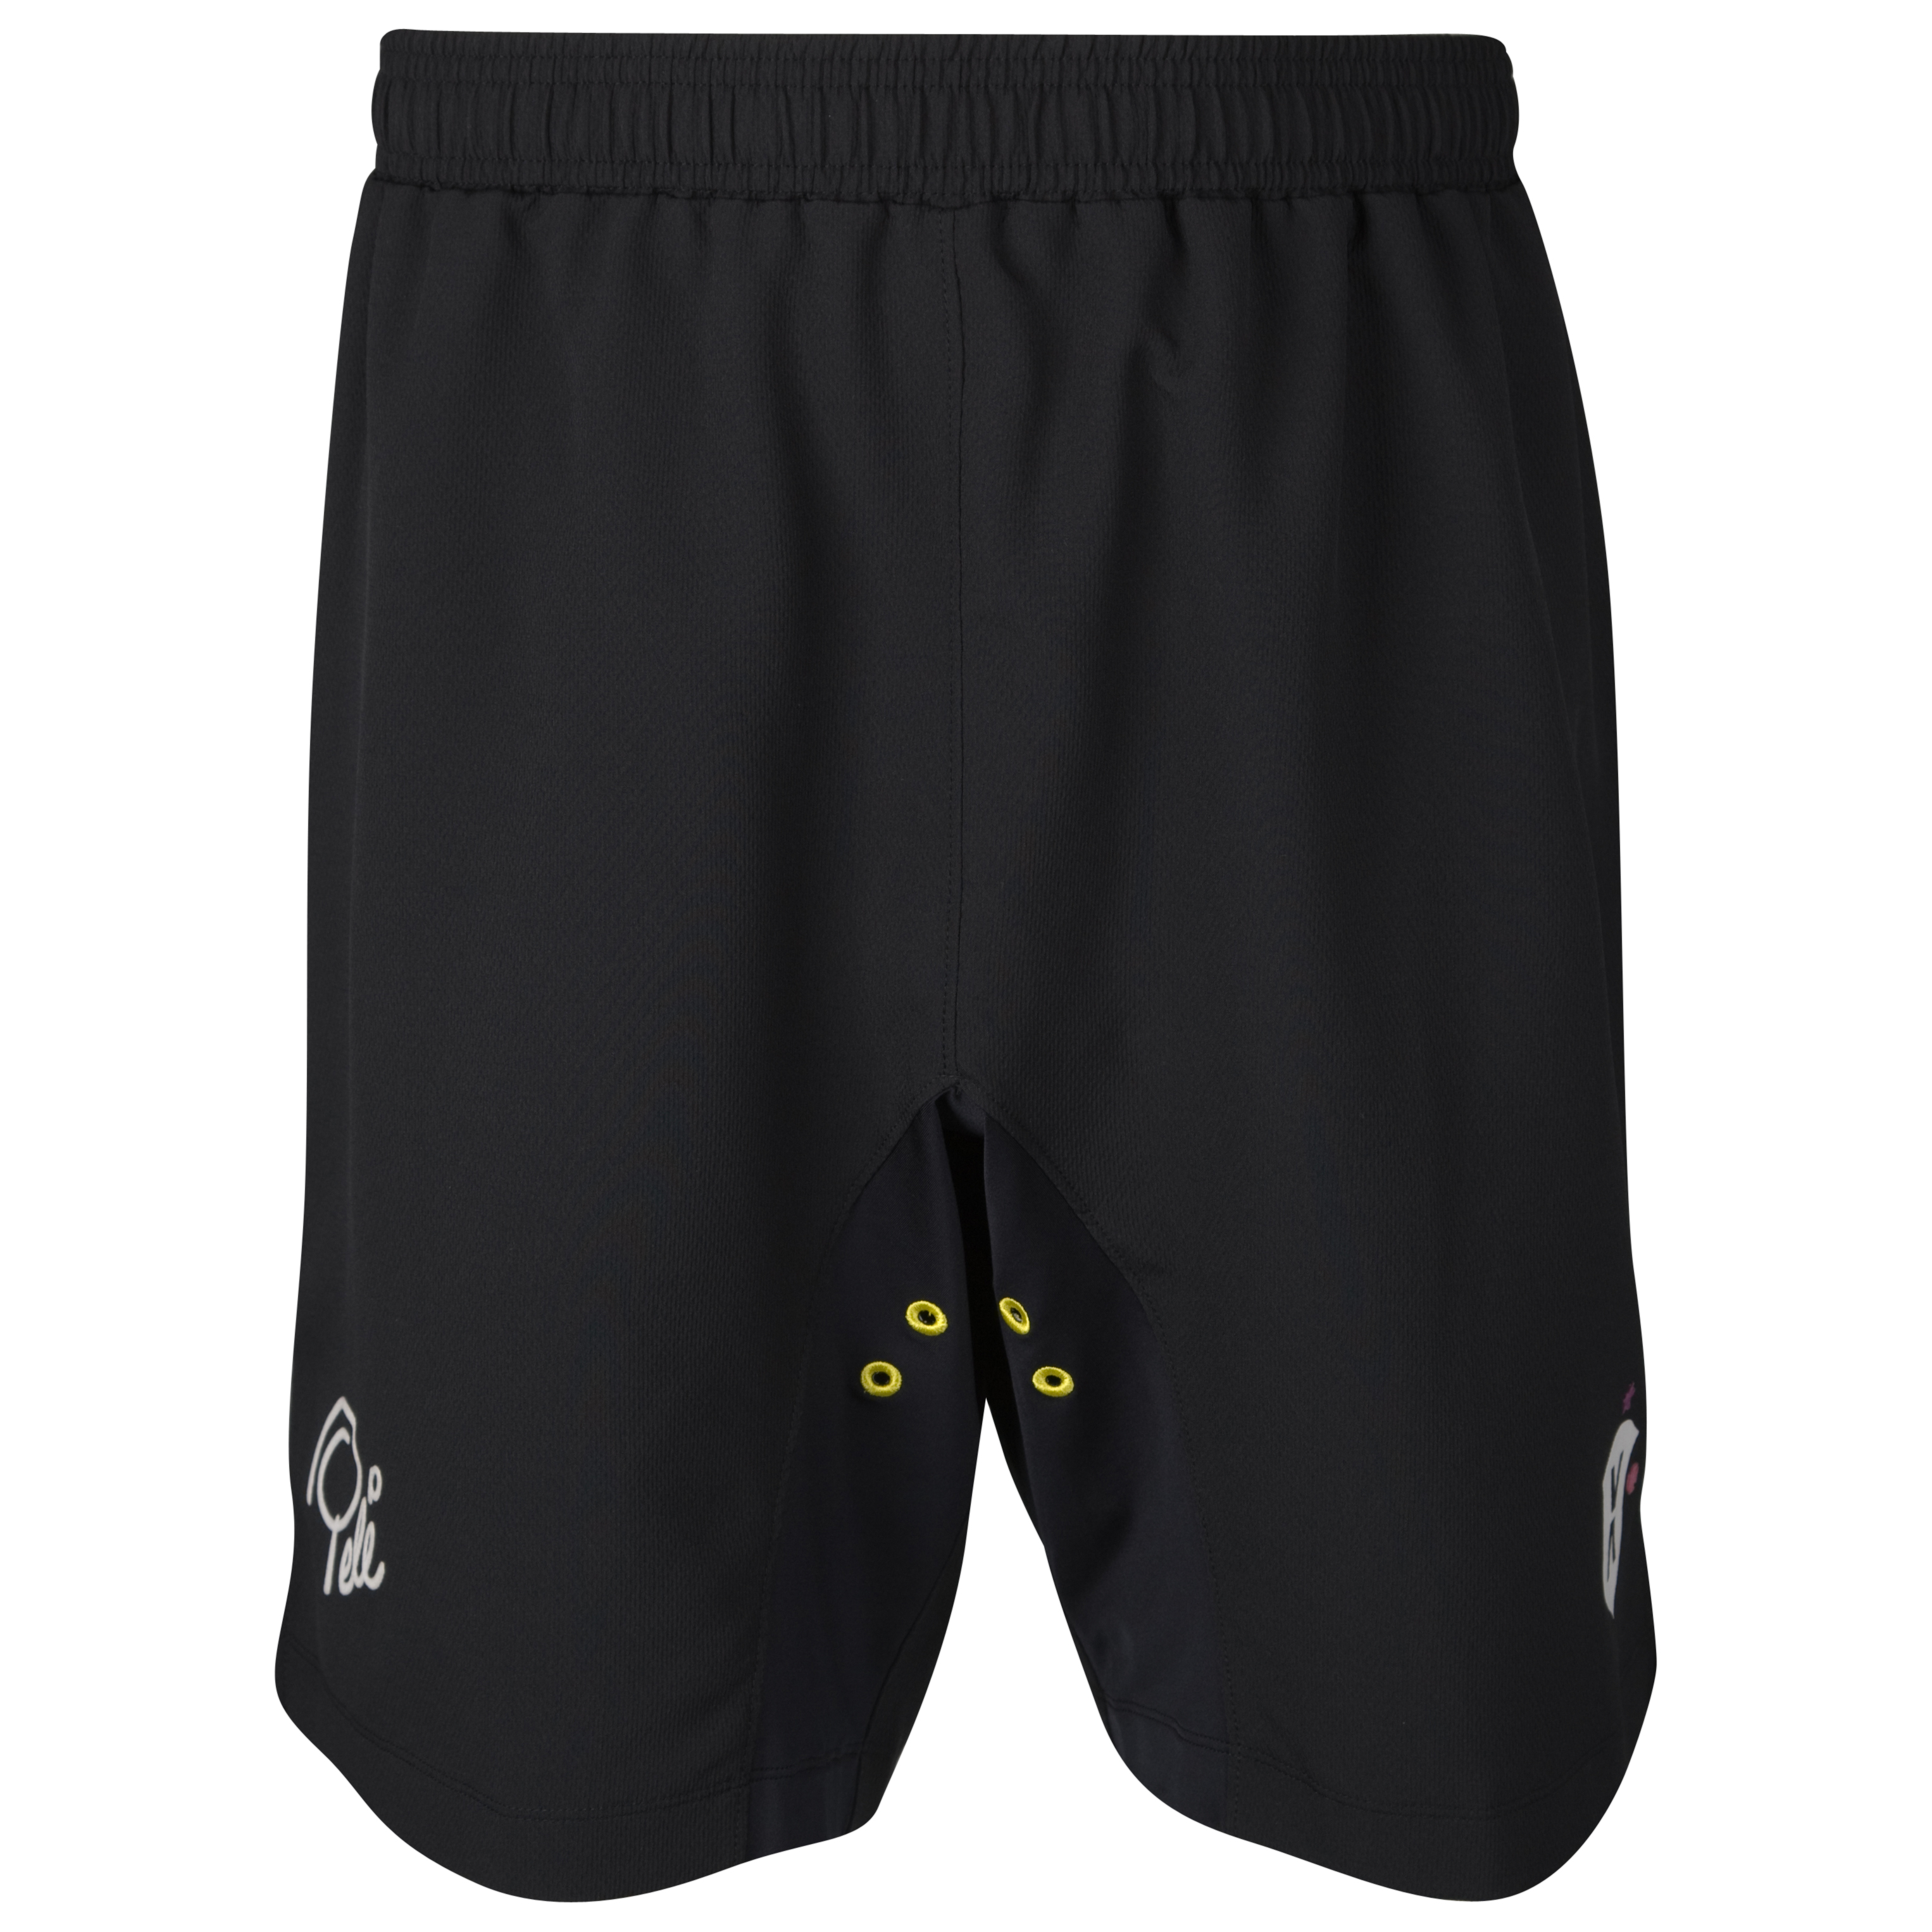 Pele Pele Sports Solid Shorts - Black Anthracite